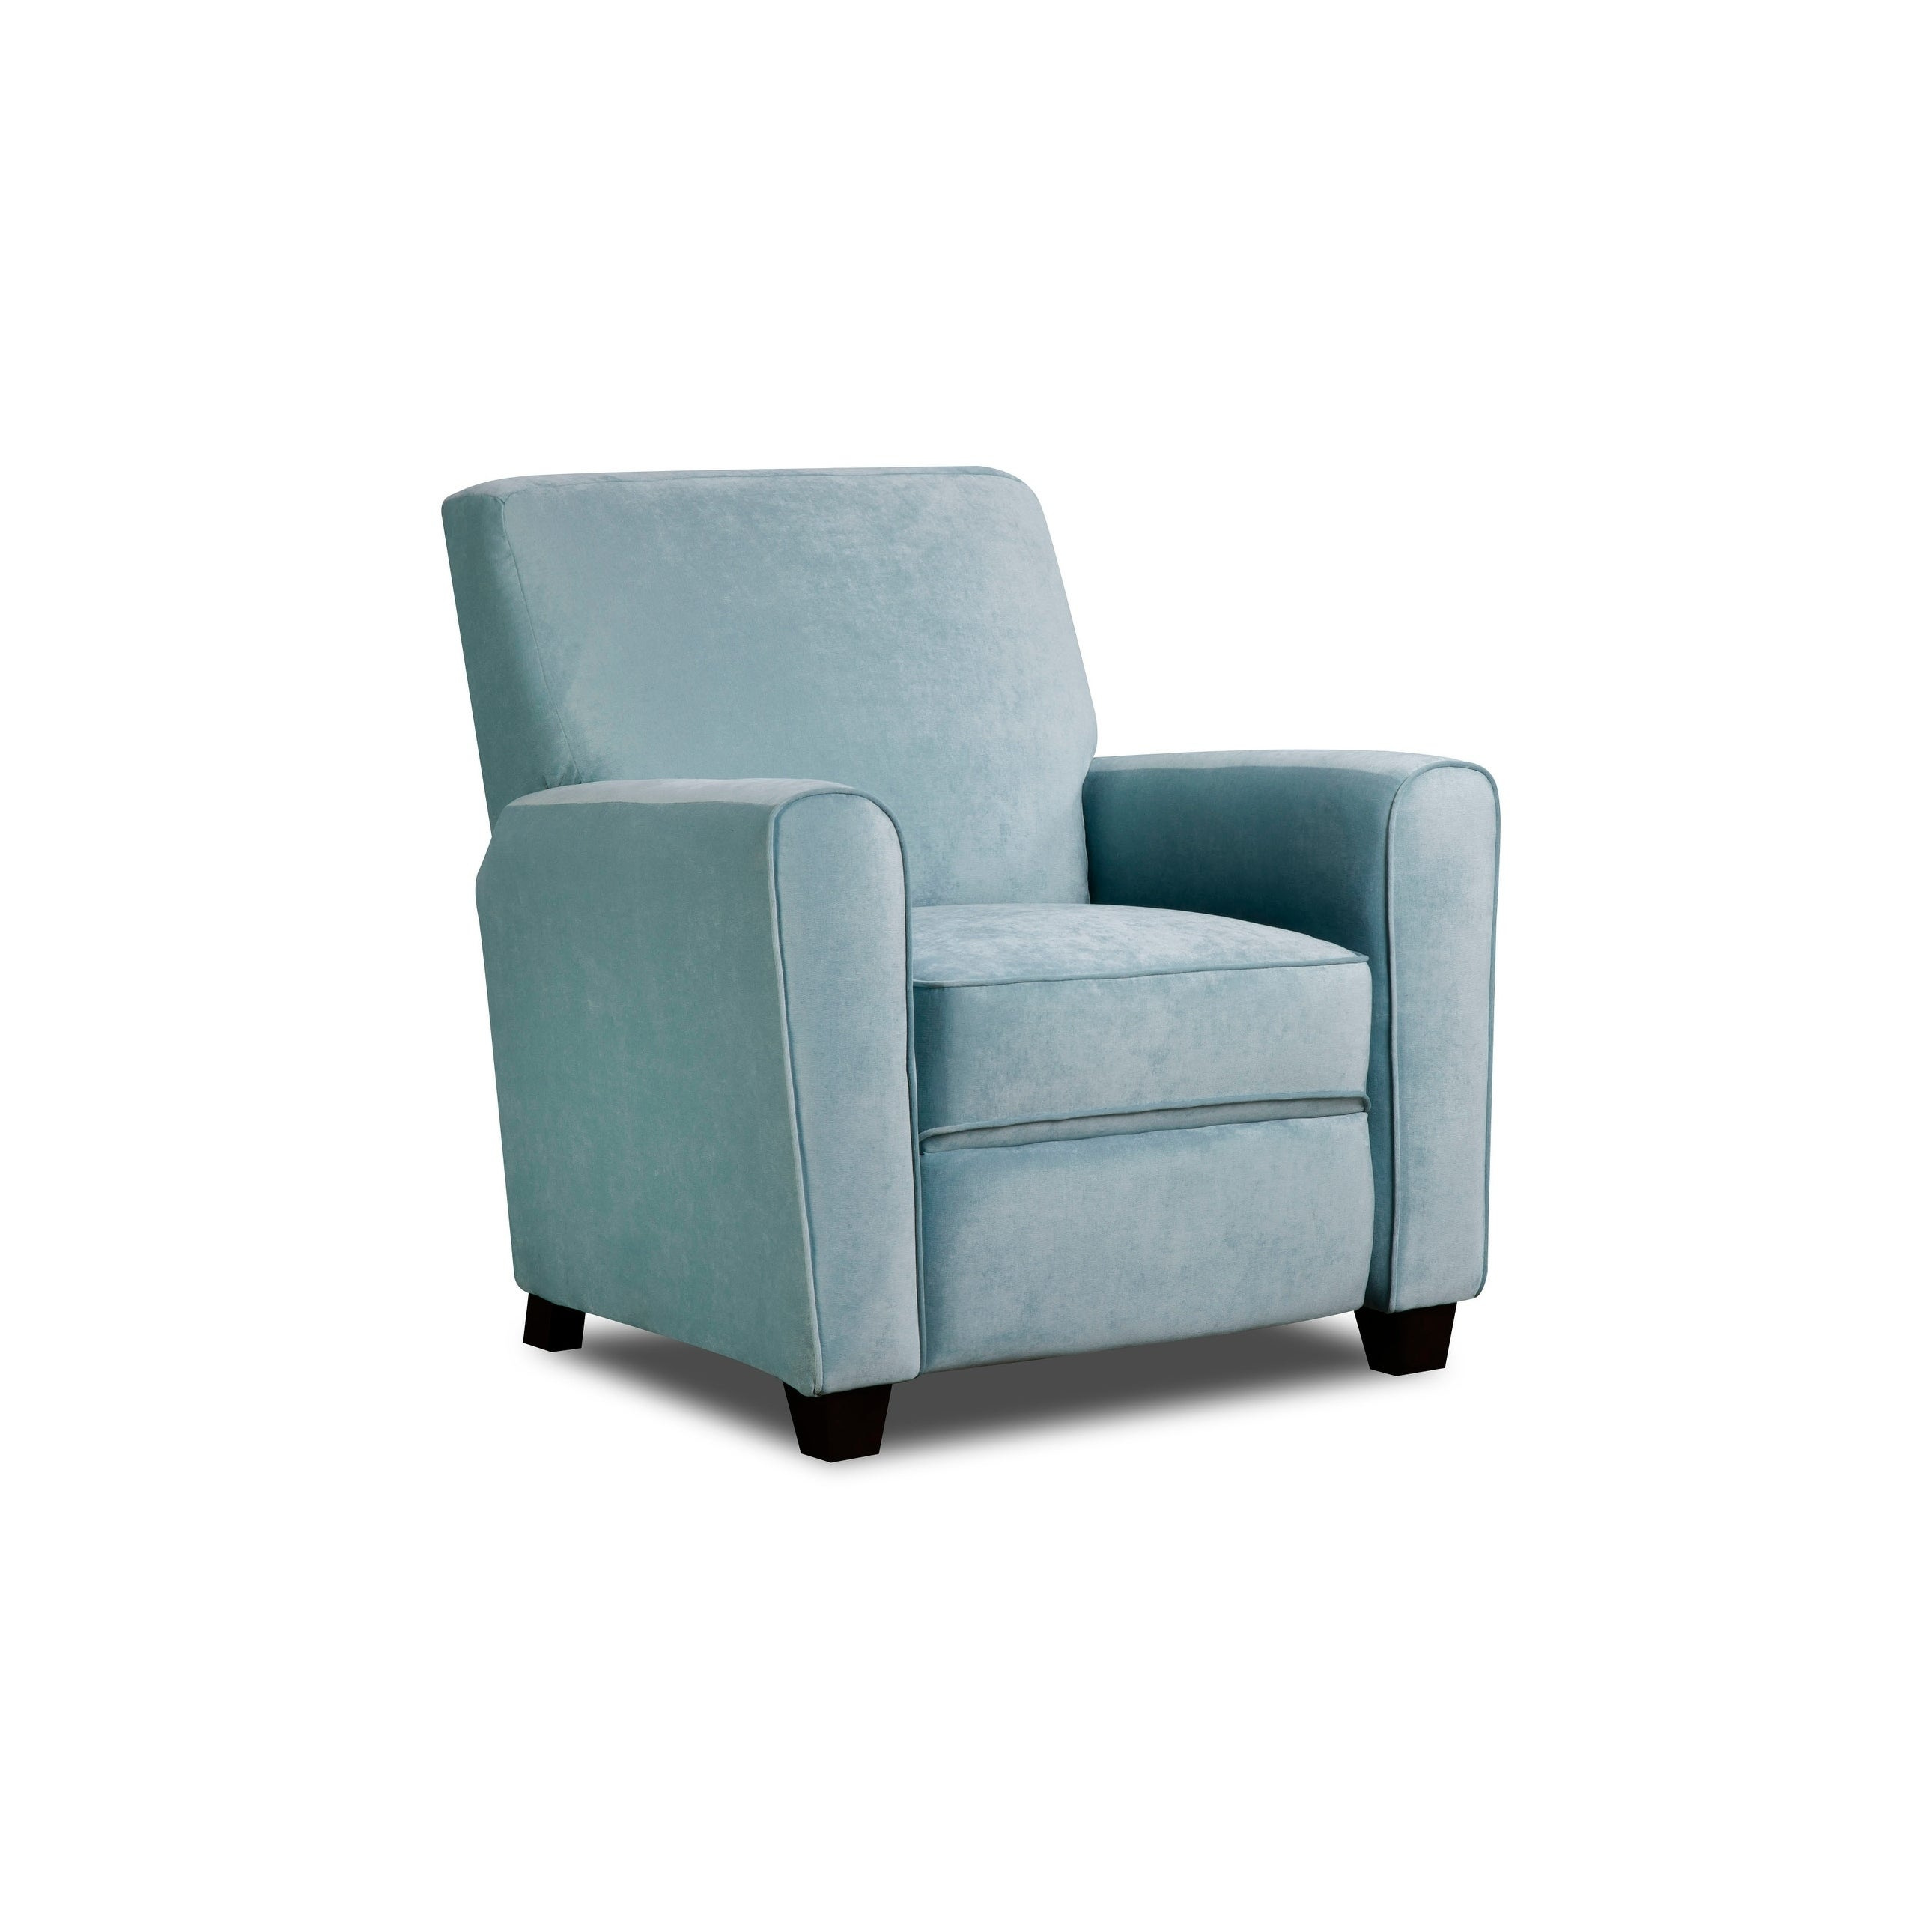 Shop Delta Recliner (Multiple Colors Available) - Free Shipping ...